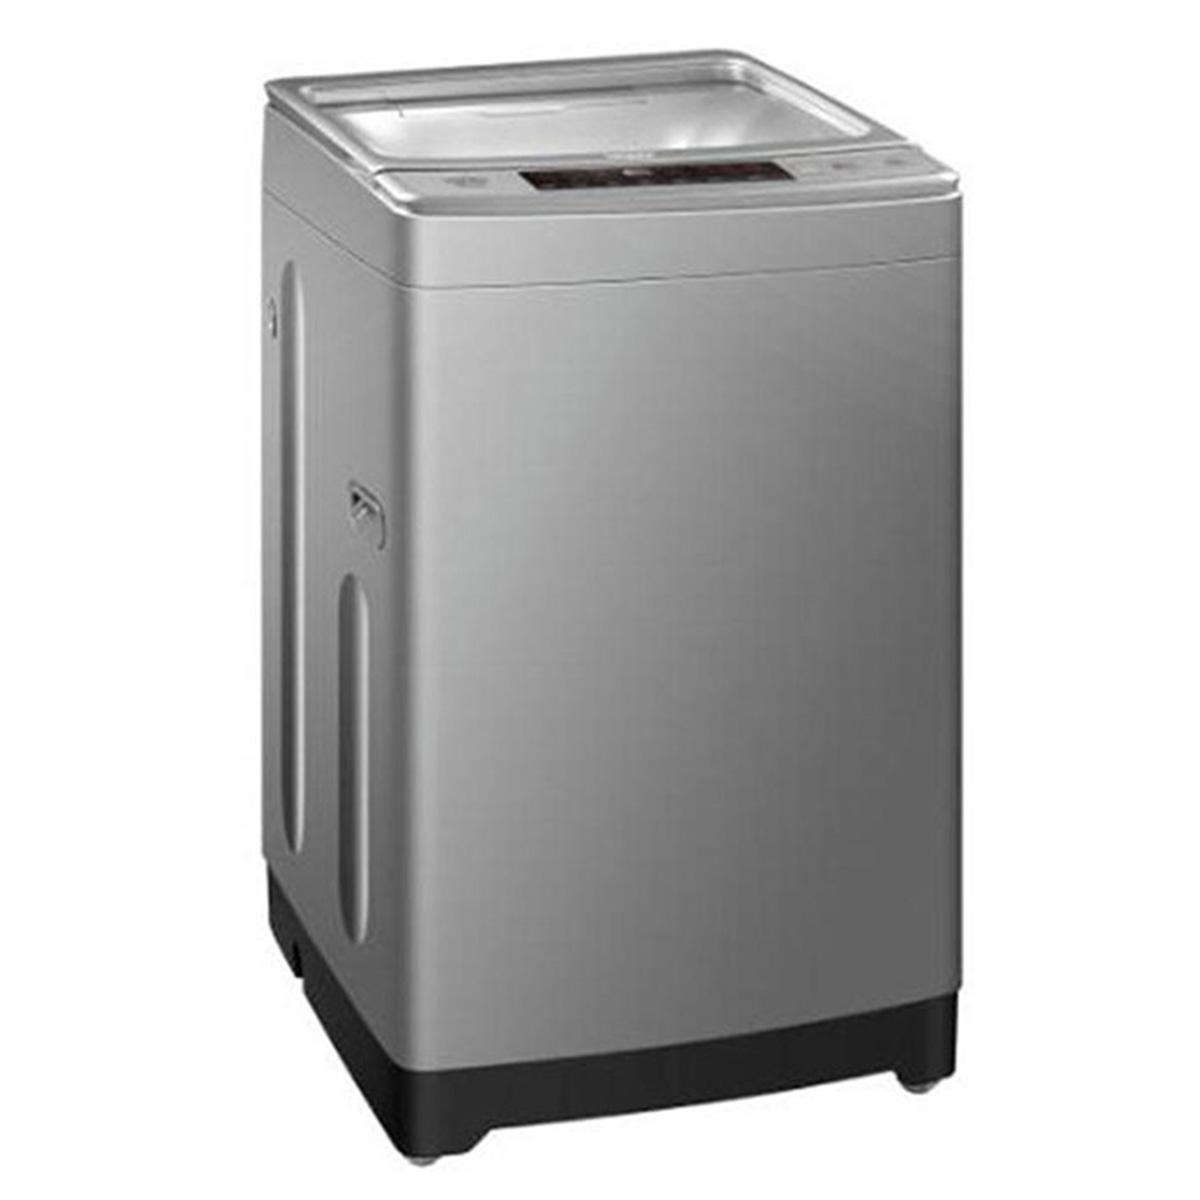 Haier Automatic Washing Machine Price In Pakistan 2020 Prices Updated Daily